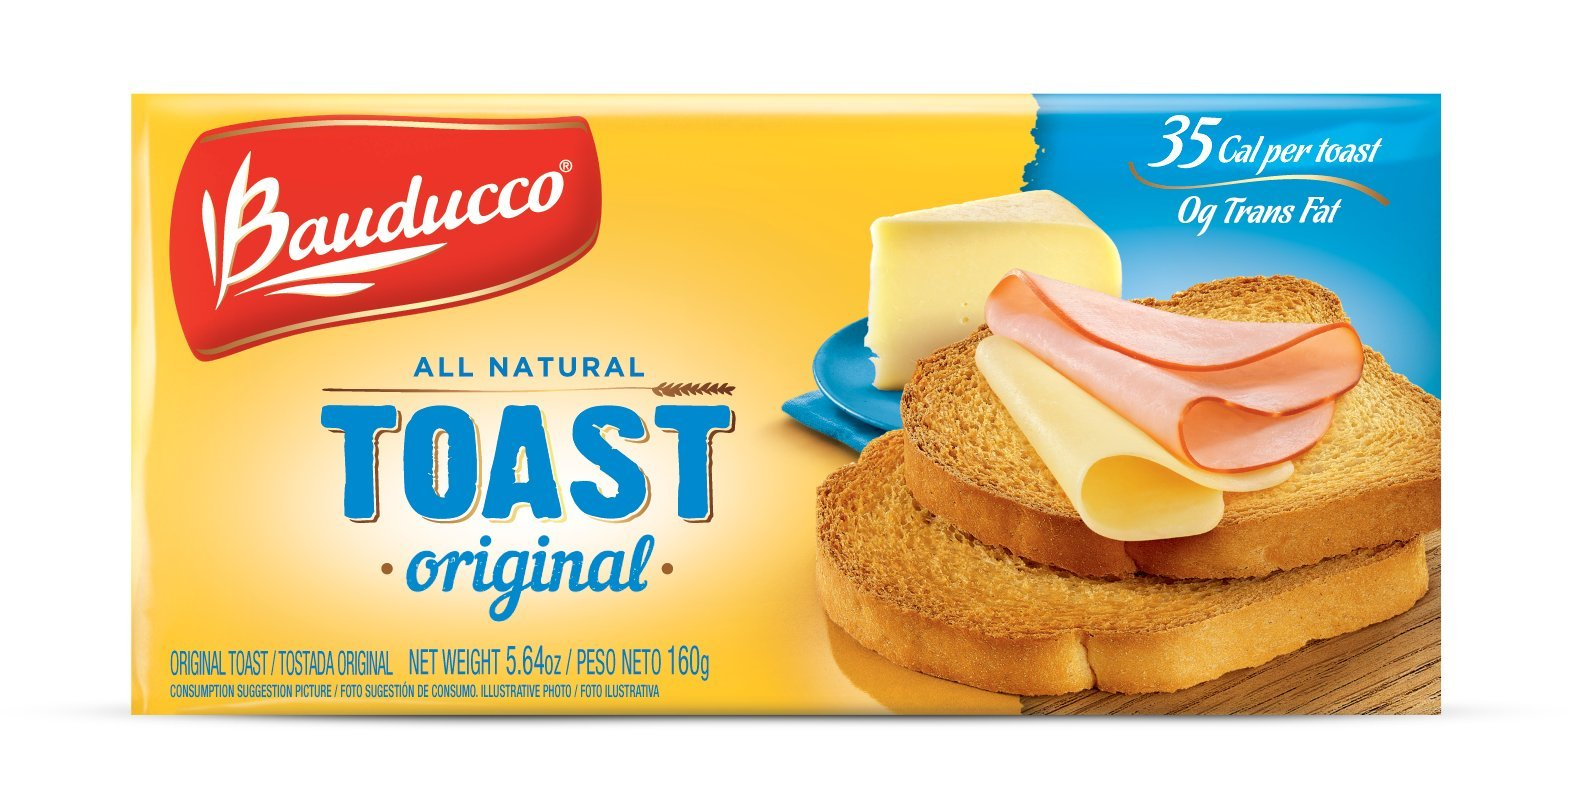 Bauducco Toast, Original, 5.64 Ounce (Pack of 16) - Packaging may vary by Bauducco